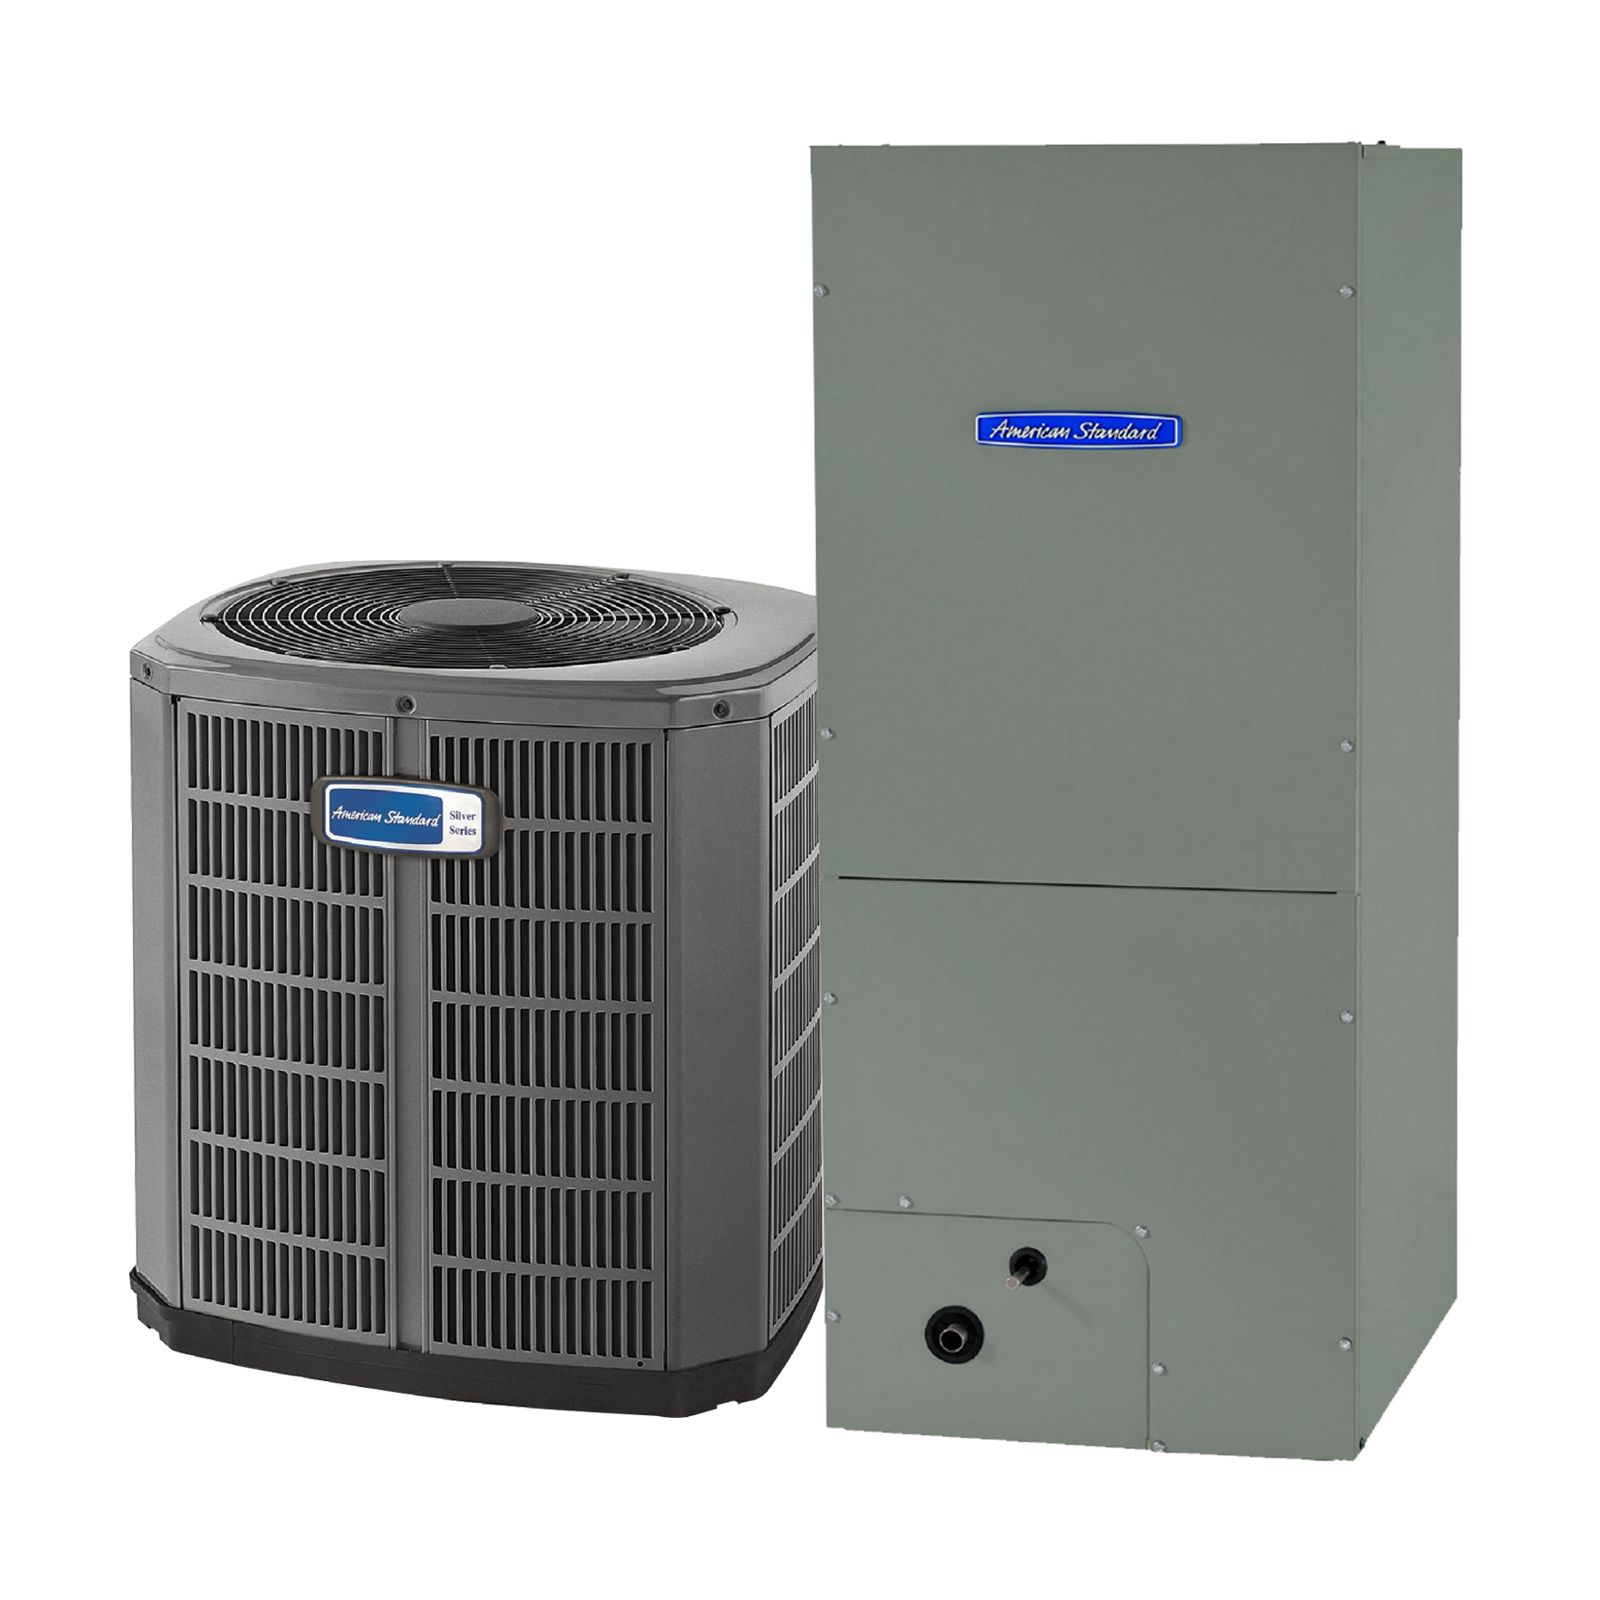 Product name american standard 4a7a6036h1000a 4fwhf036a1000b 3 ton - American Standard Ahri 7795587 3 Ton 16 Seer Silver Series 4a7a6036h Tem6a0c36 Air Conditioner Split System